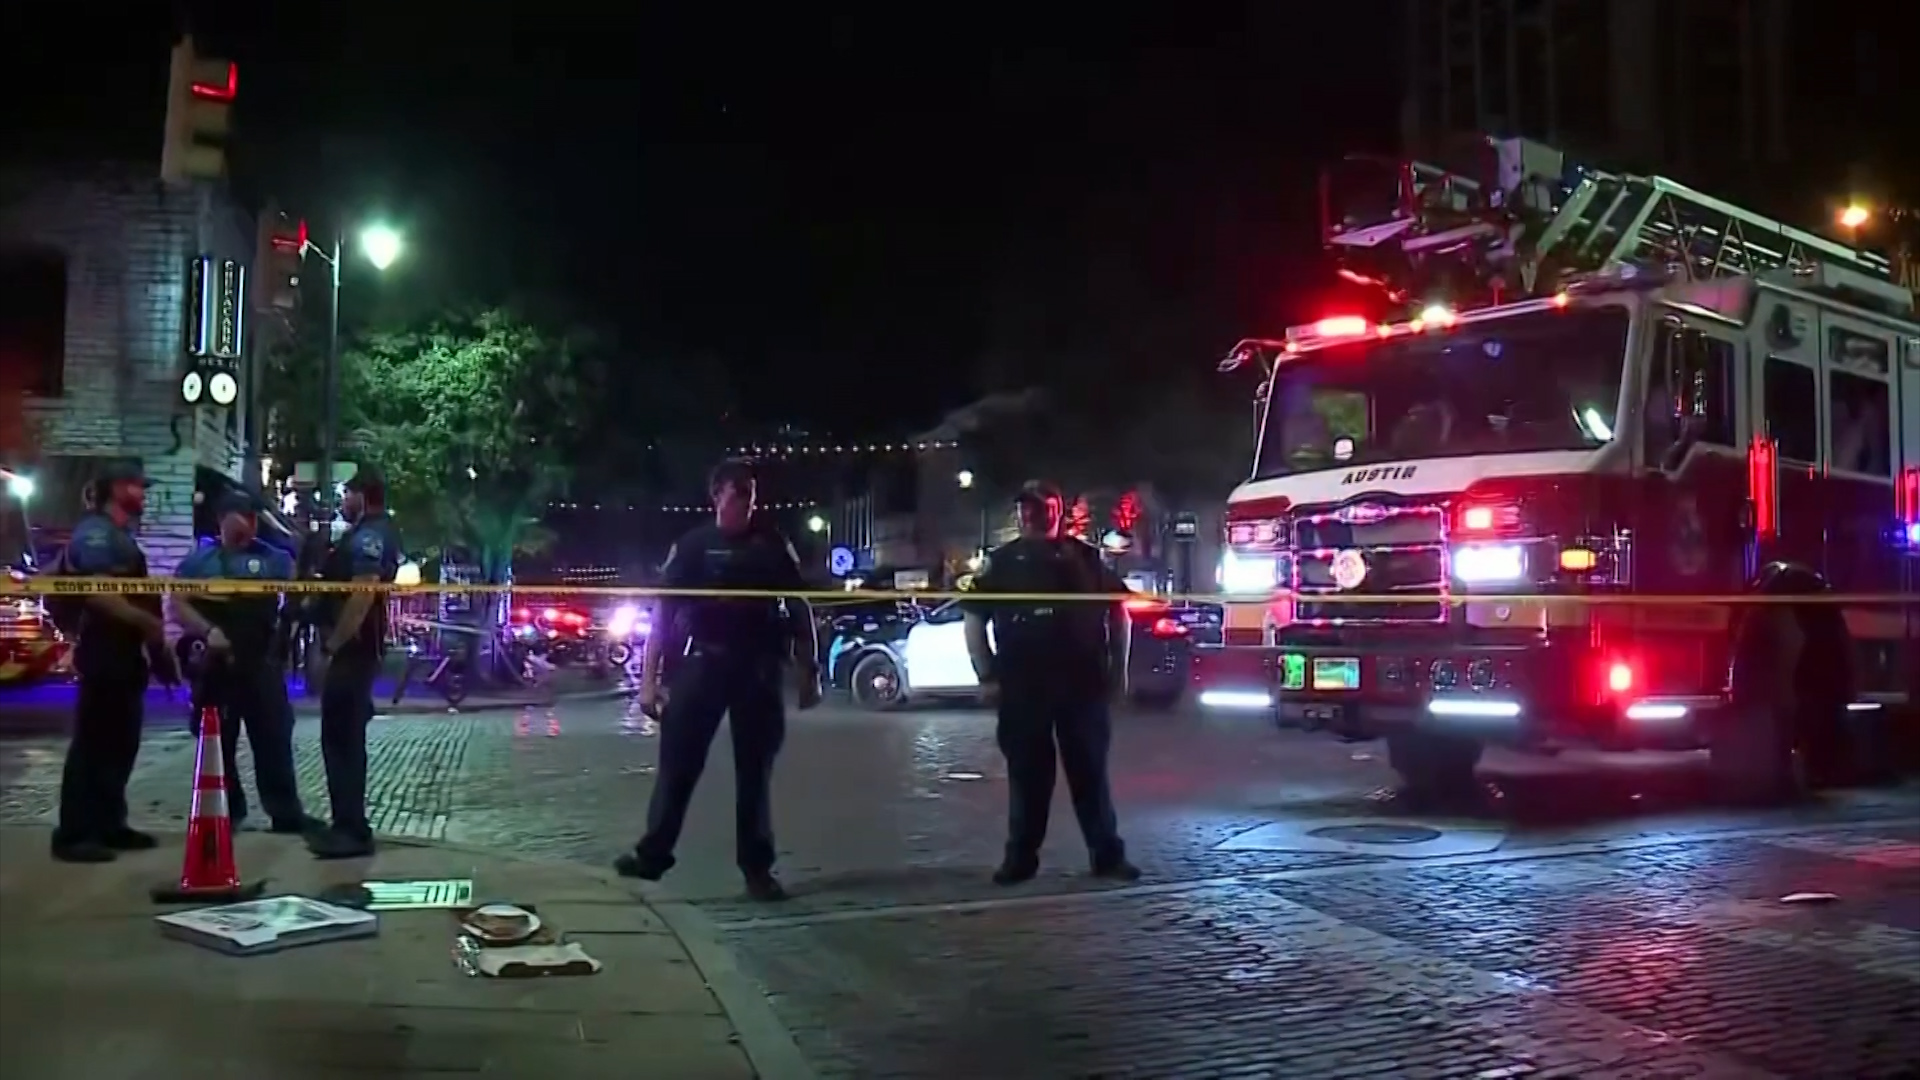 13 injured in shooting in downtown Austin, suspect not in custody: police